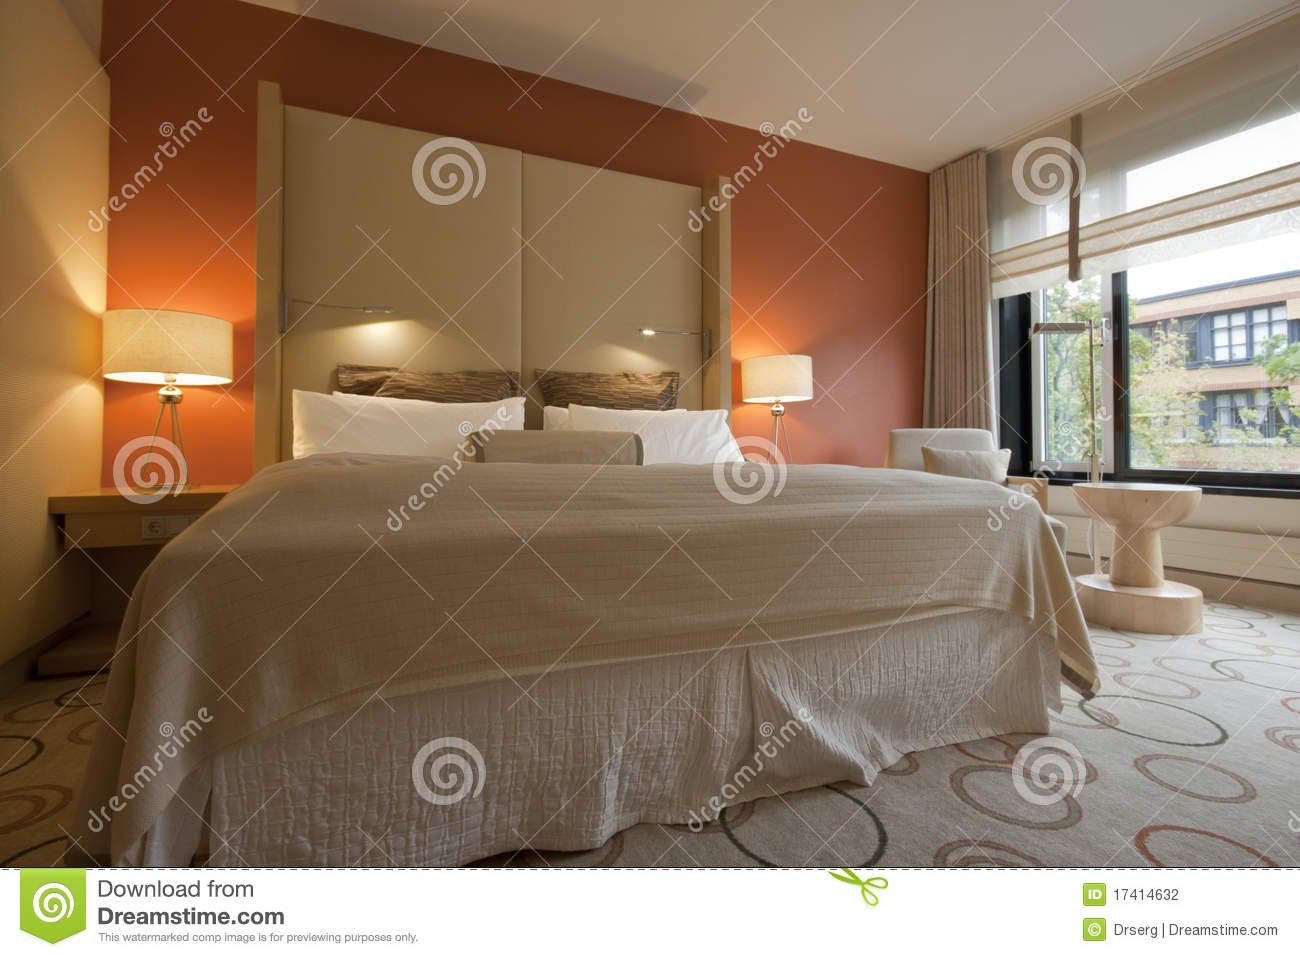 King size bed with bedside table and lamps stock photography royalty free stock photo download king size bed with bedside table and lamps geotapseo Gallery